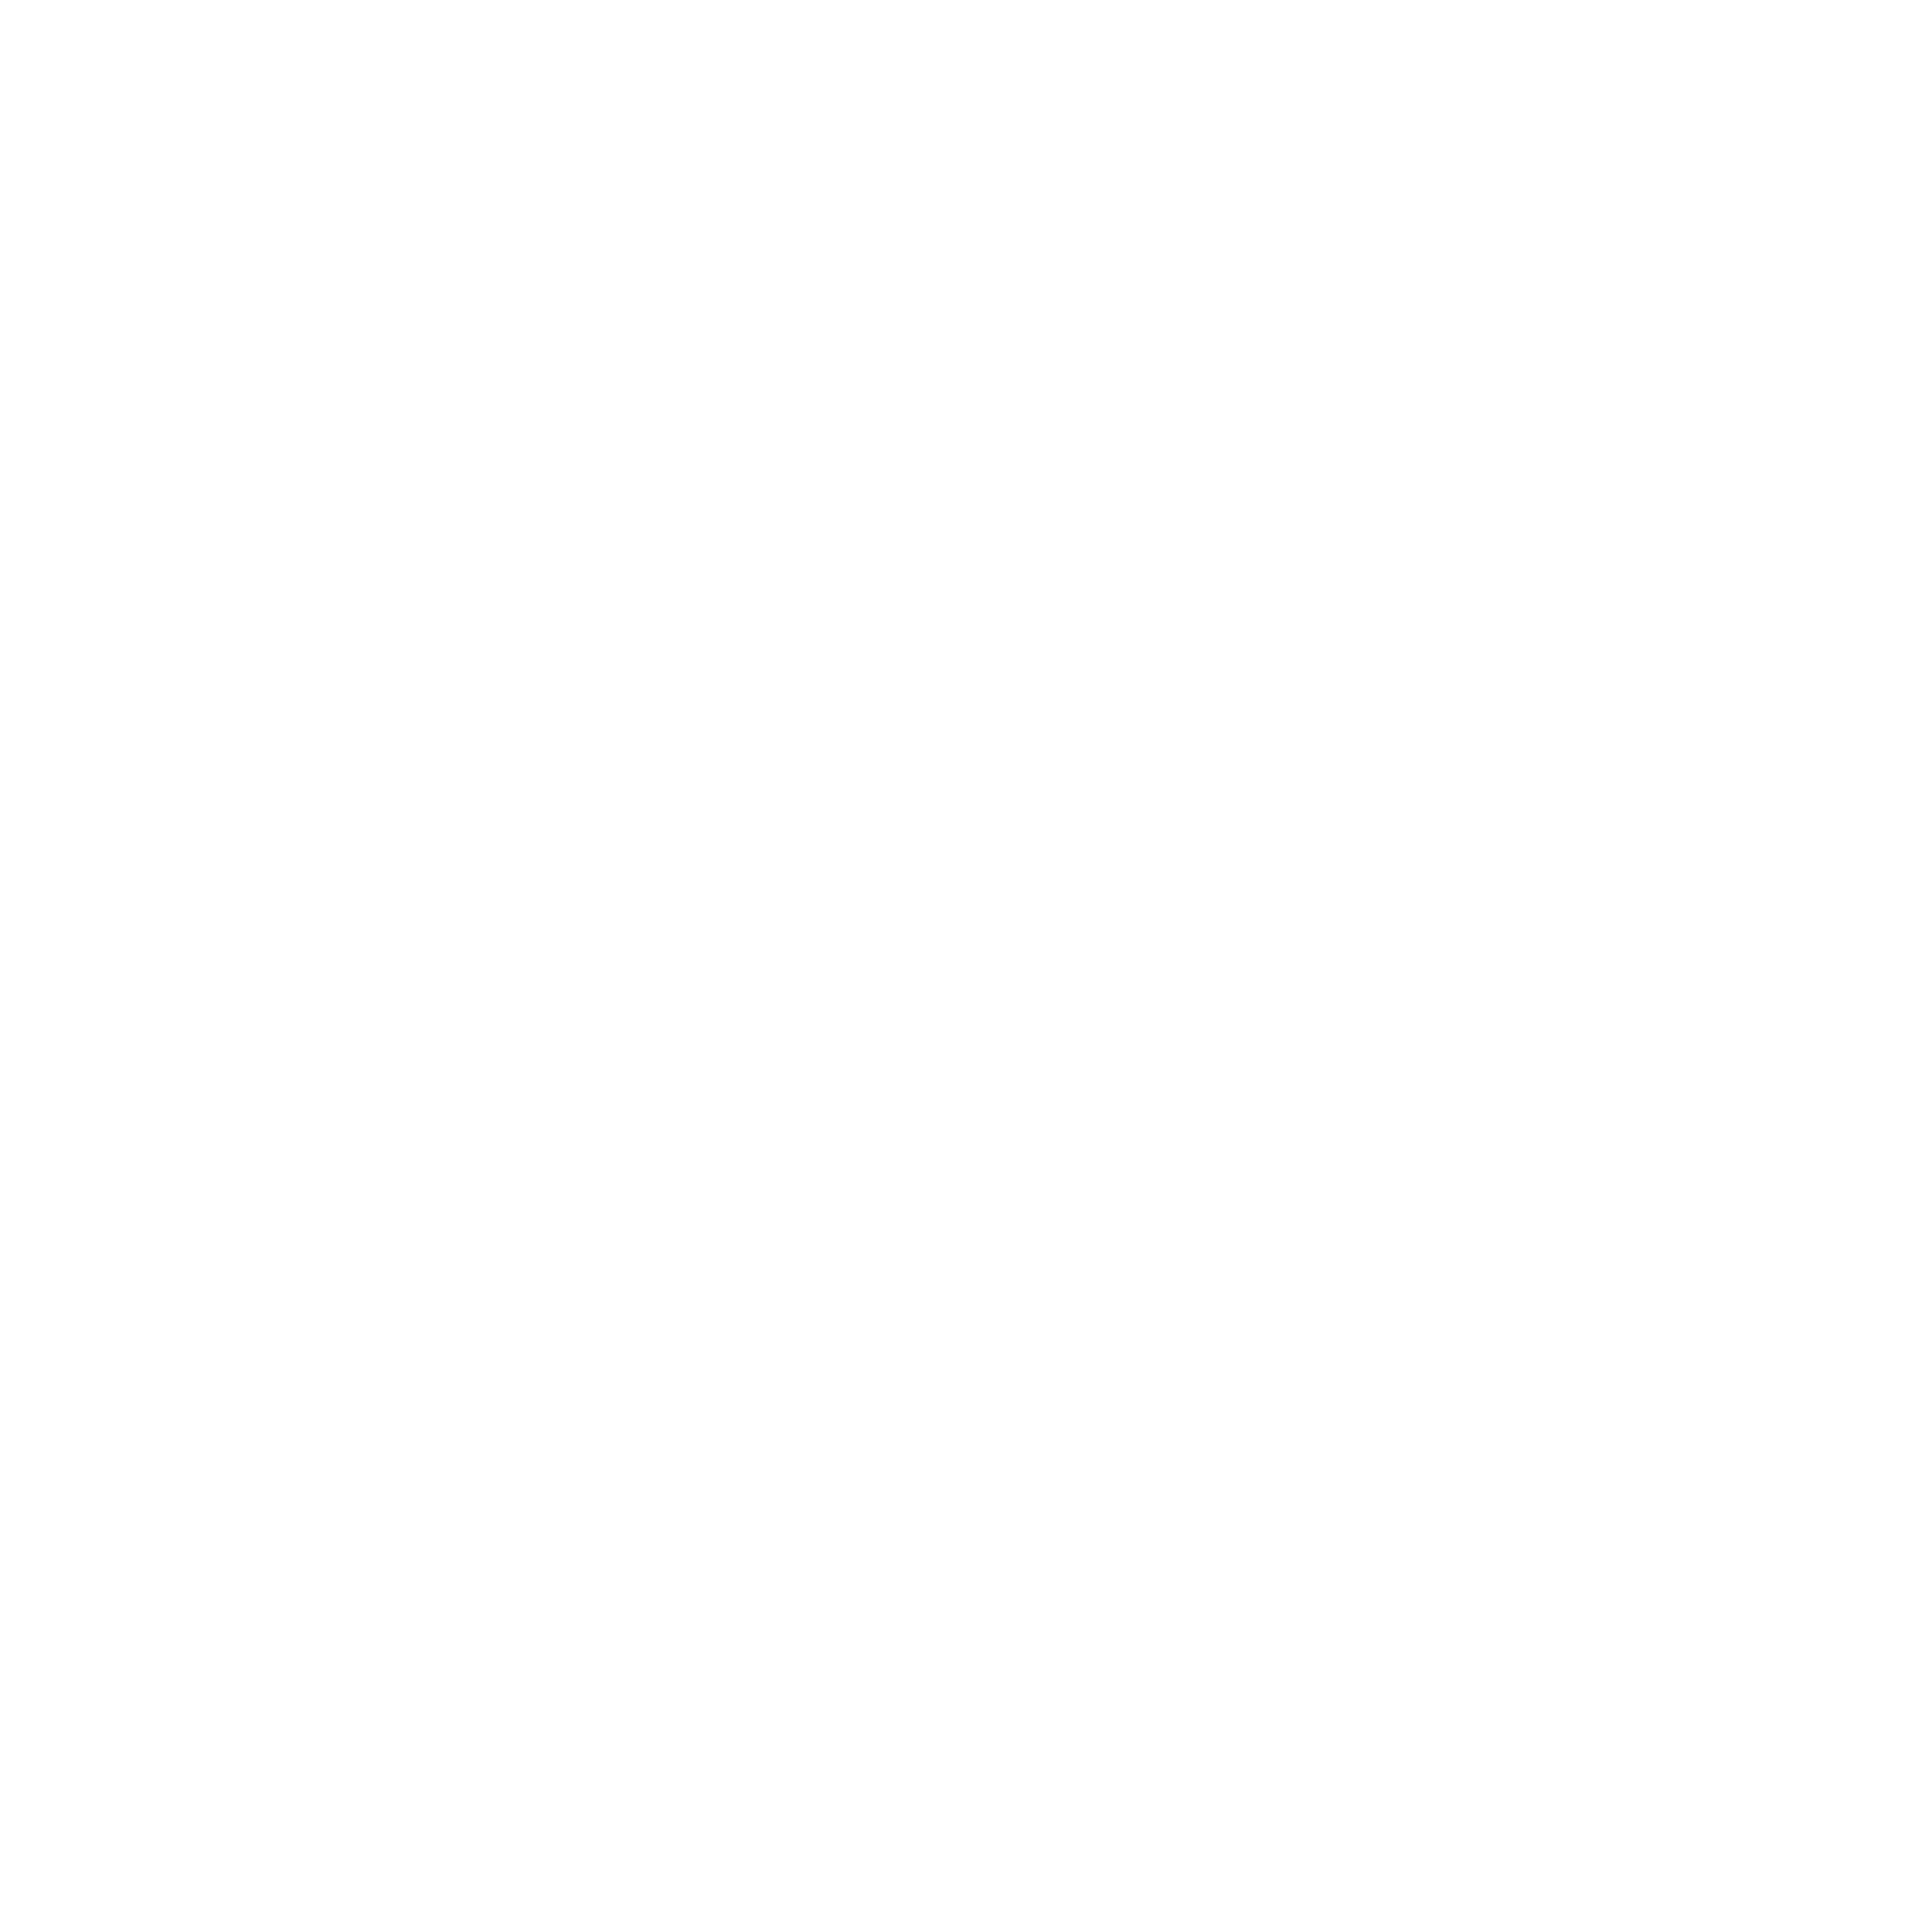 What do we value and how do we want to spend our time?